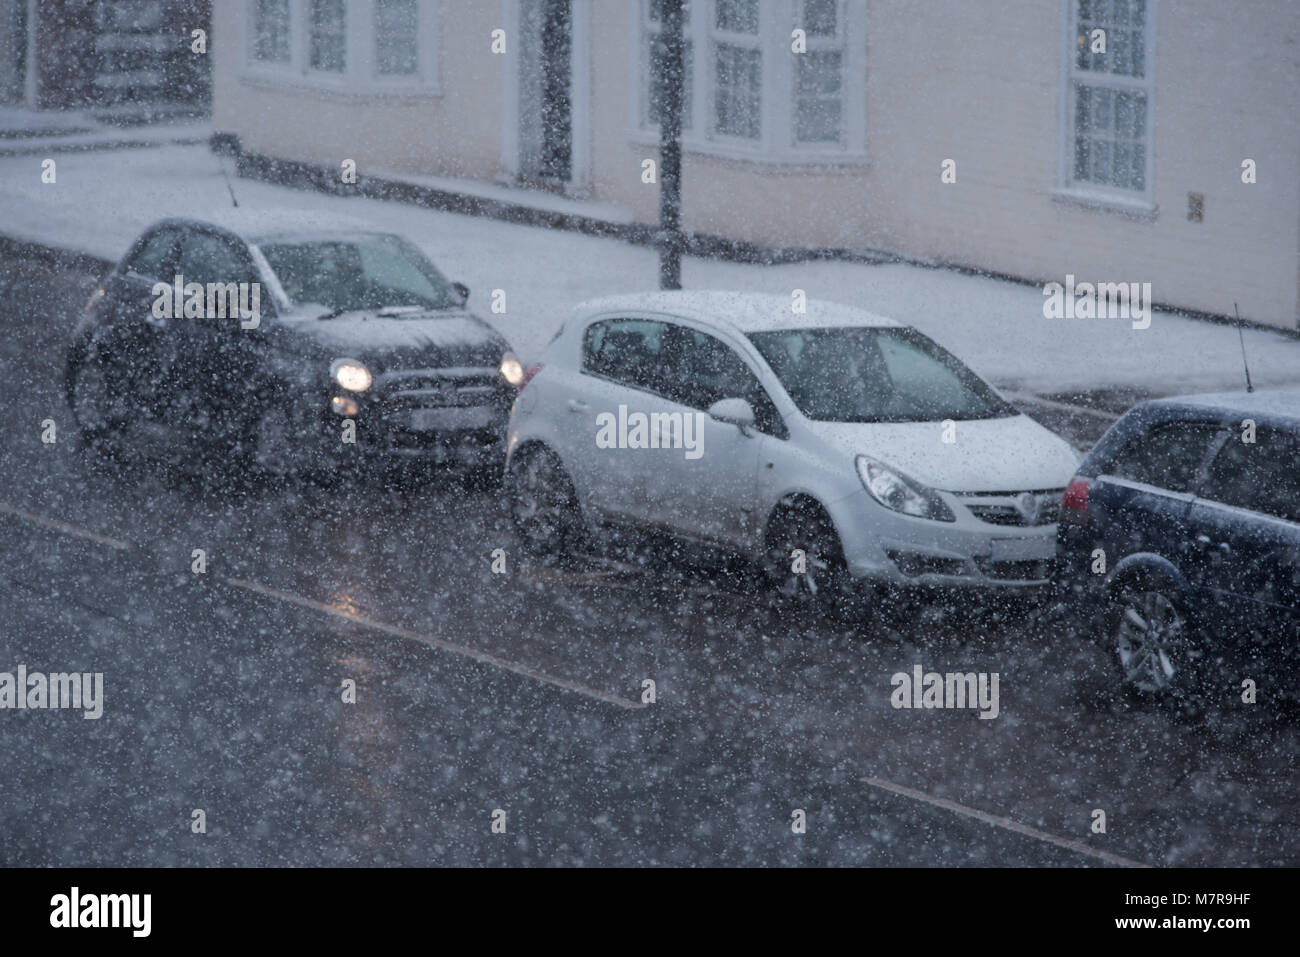 traffic chaos in UK with cars travelling along snow covered road during blizzard conditions - Stock Image